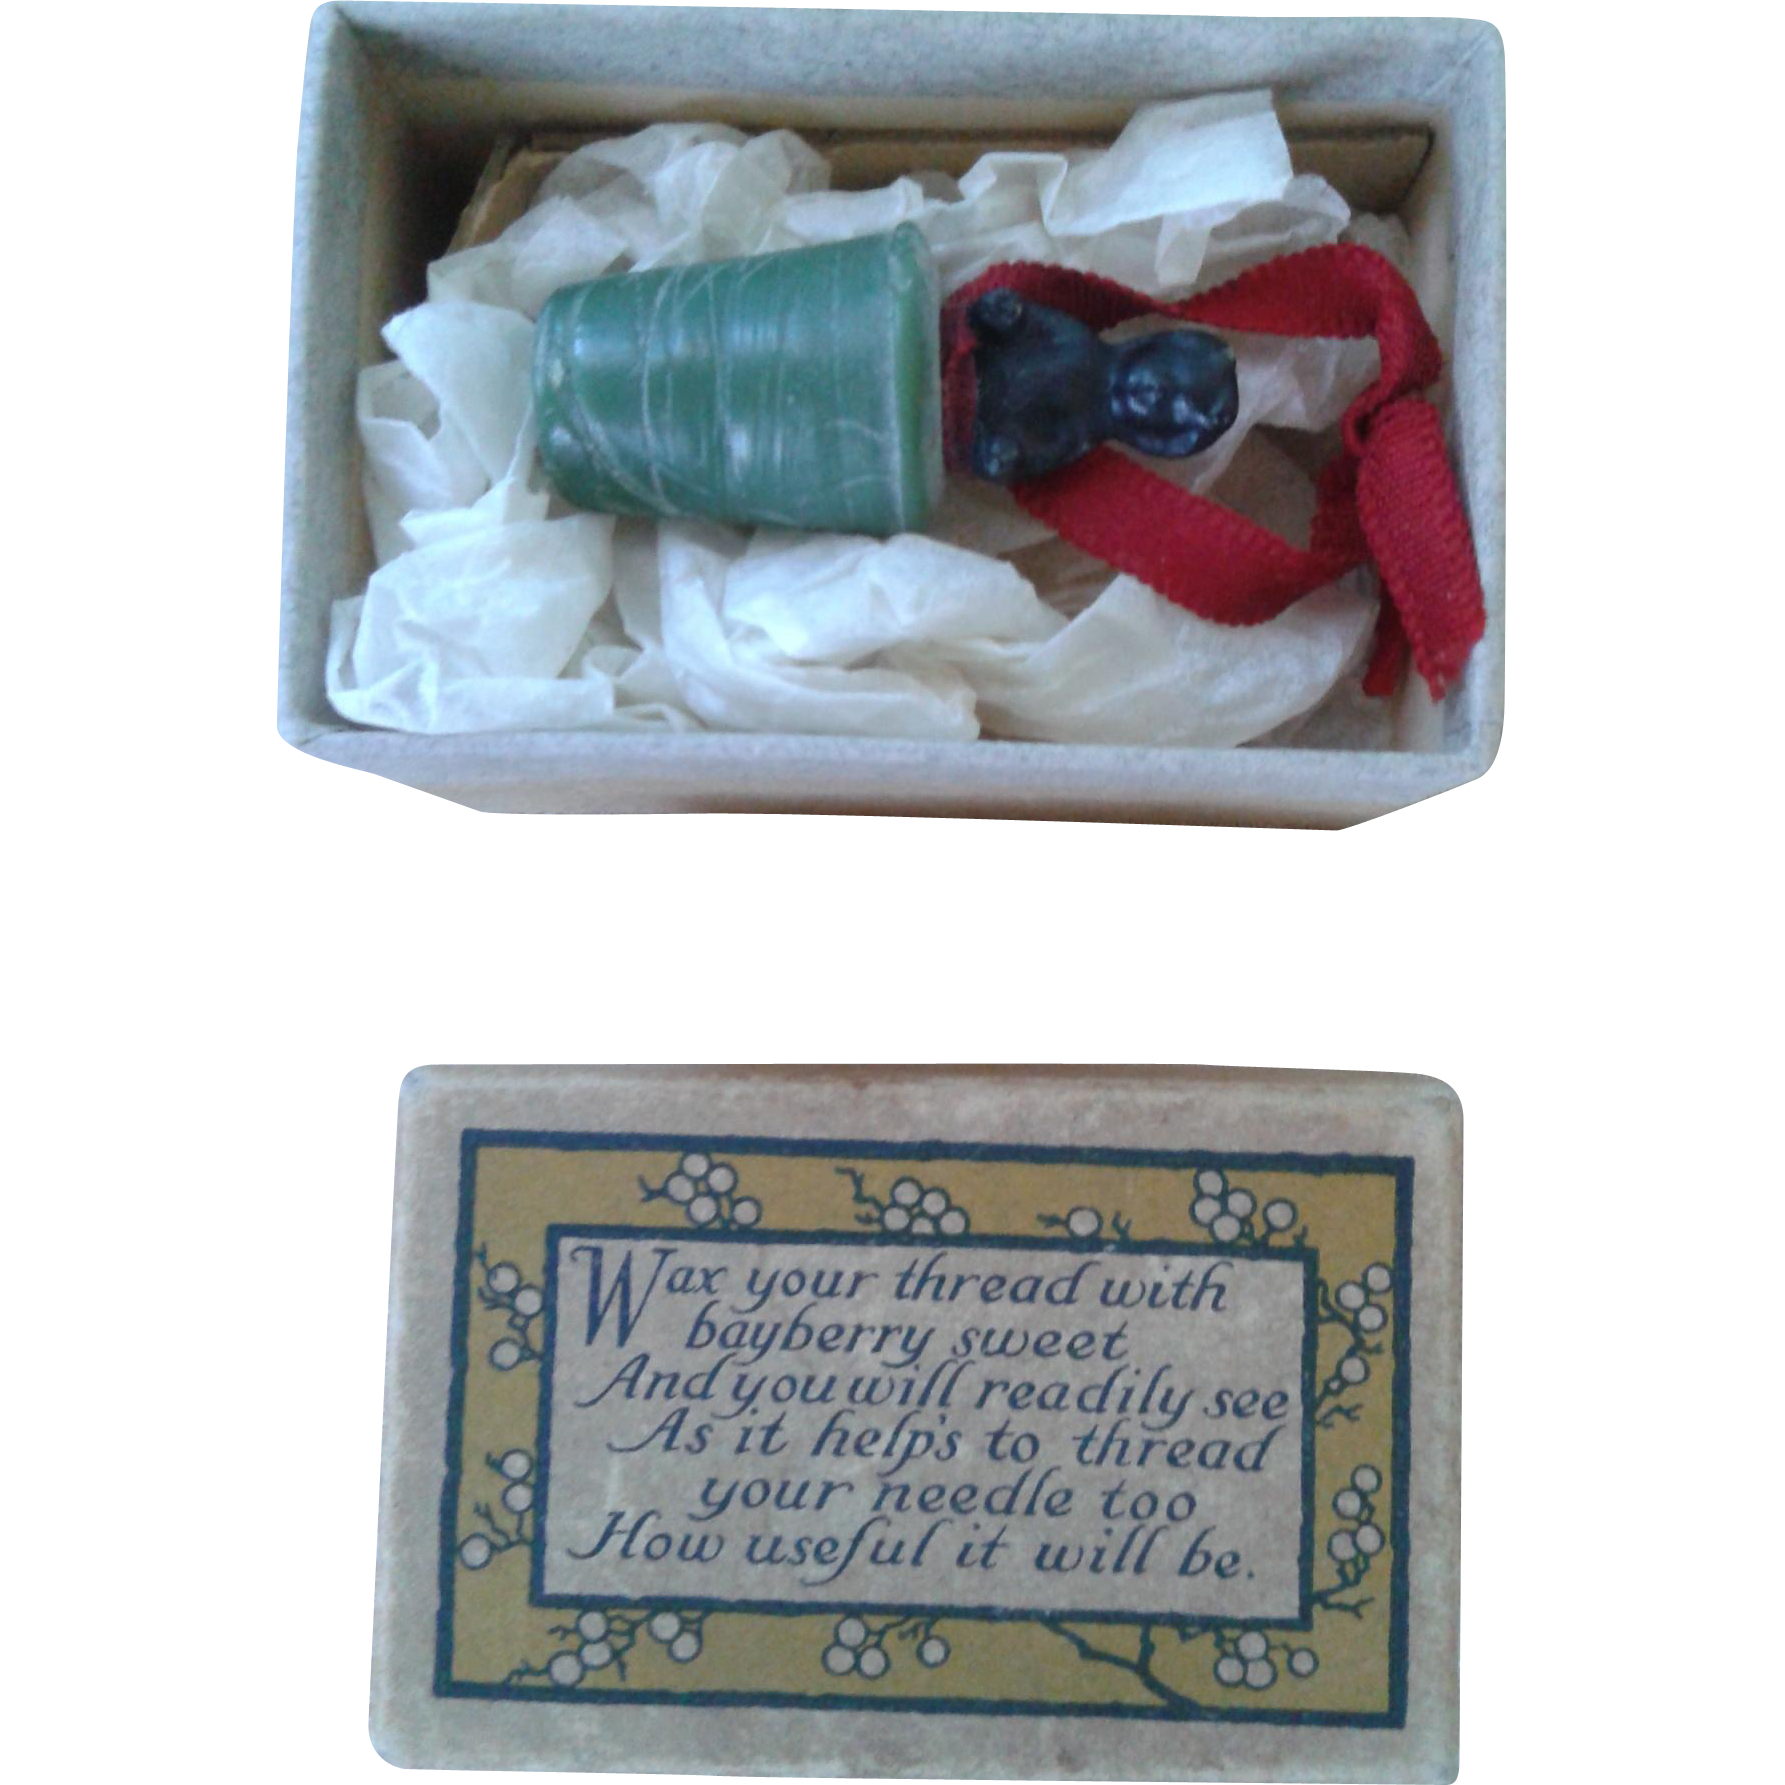 Rare Antique Sewing Frozen Charlotte Waxer with Box